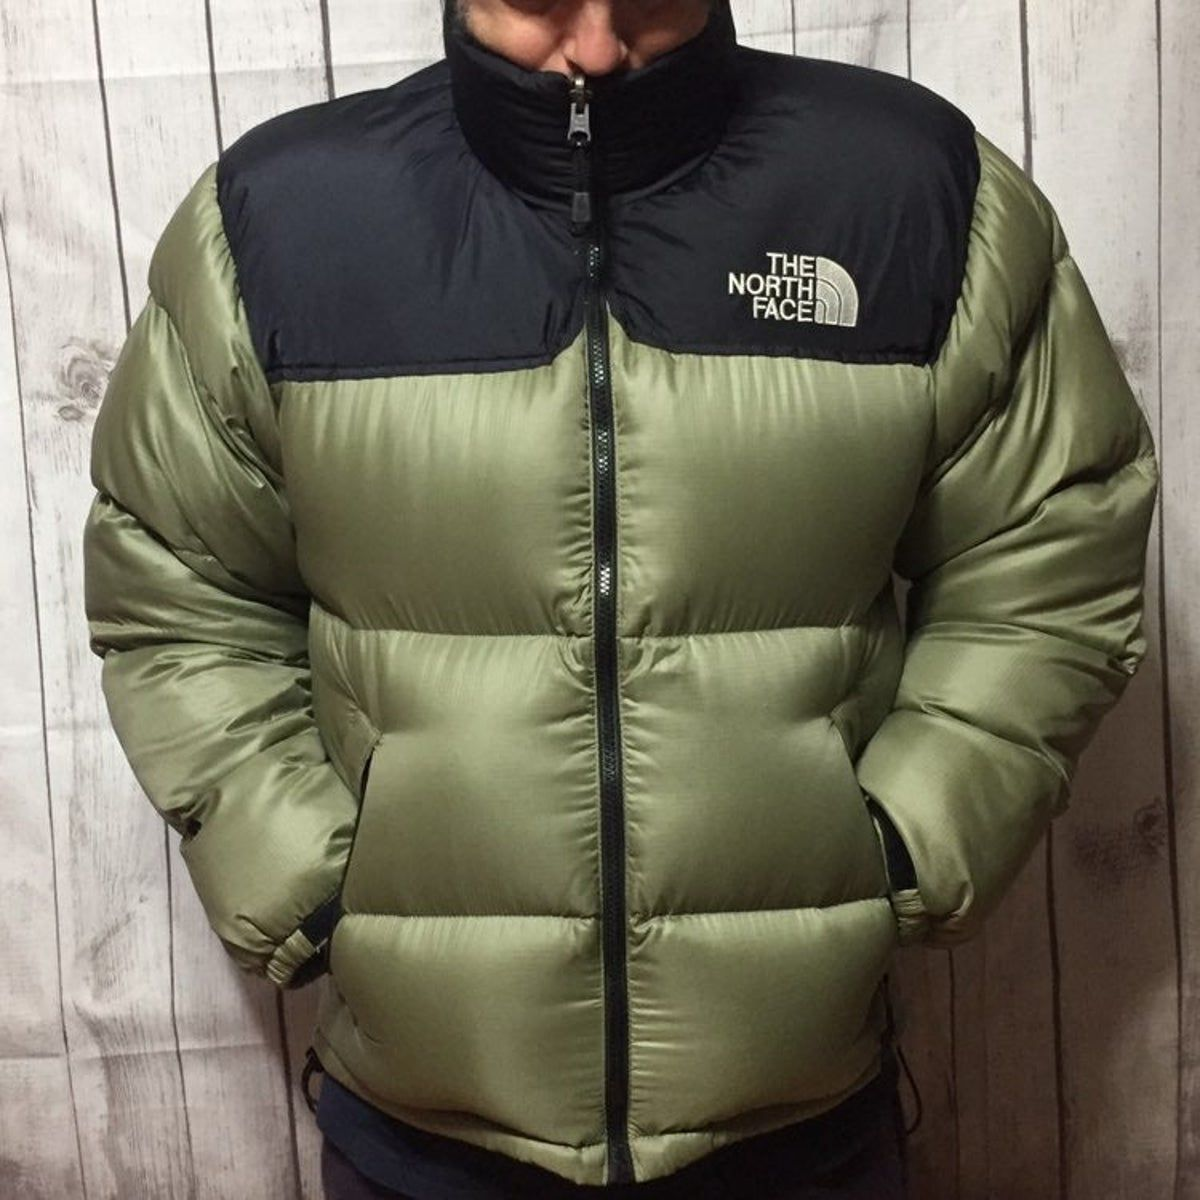 Pin By Ba Ha On Croquis In 2021 North Face Nuptse The North Face North Face 700 [ 1200 x 1200 Pixel ]